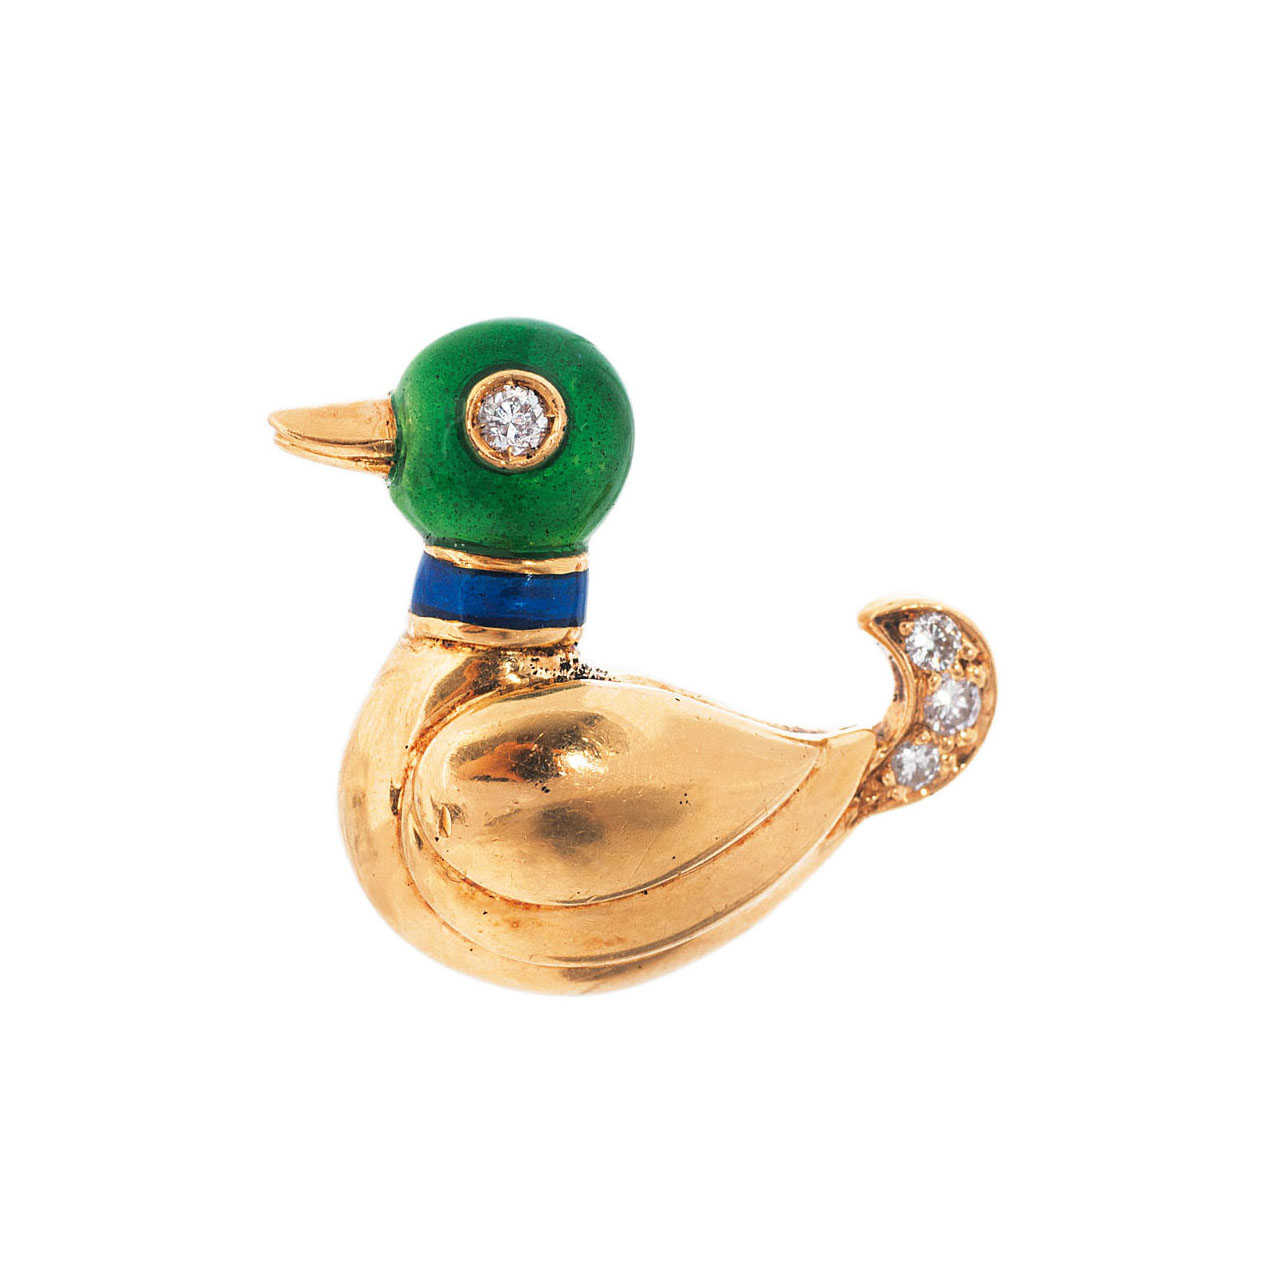 A small enamel diamond pin 'Duck' by Cartier